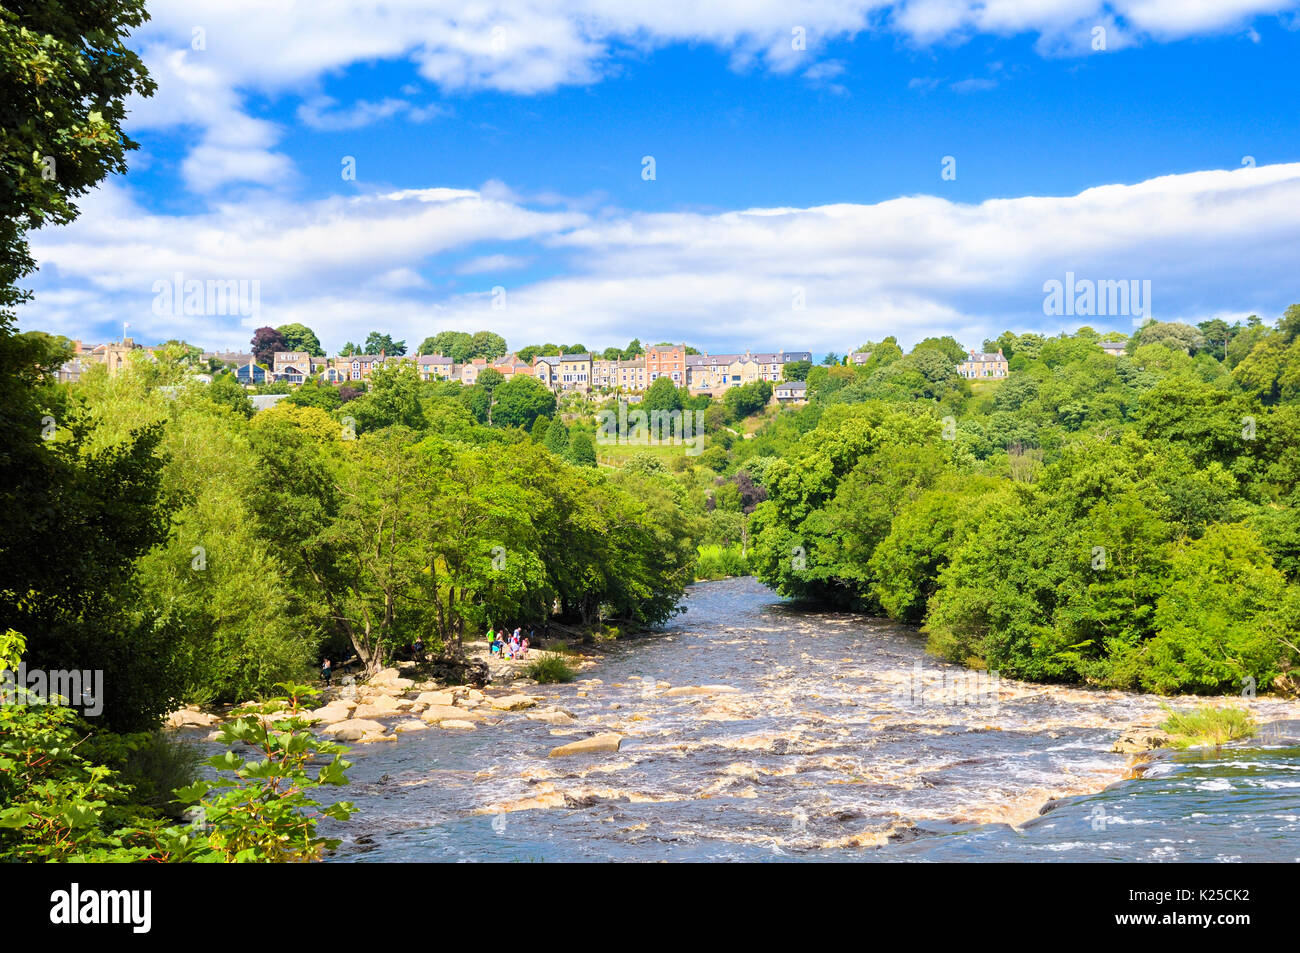 A view down the River Swale on a beautiful summer's day, Richmond, North Yorkshire, England, UK Stock Photo